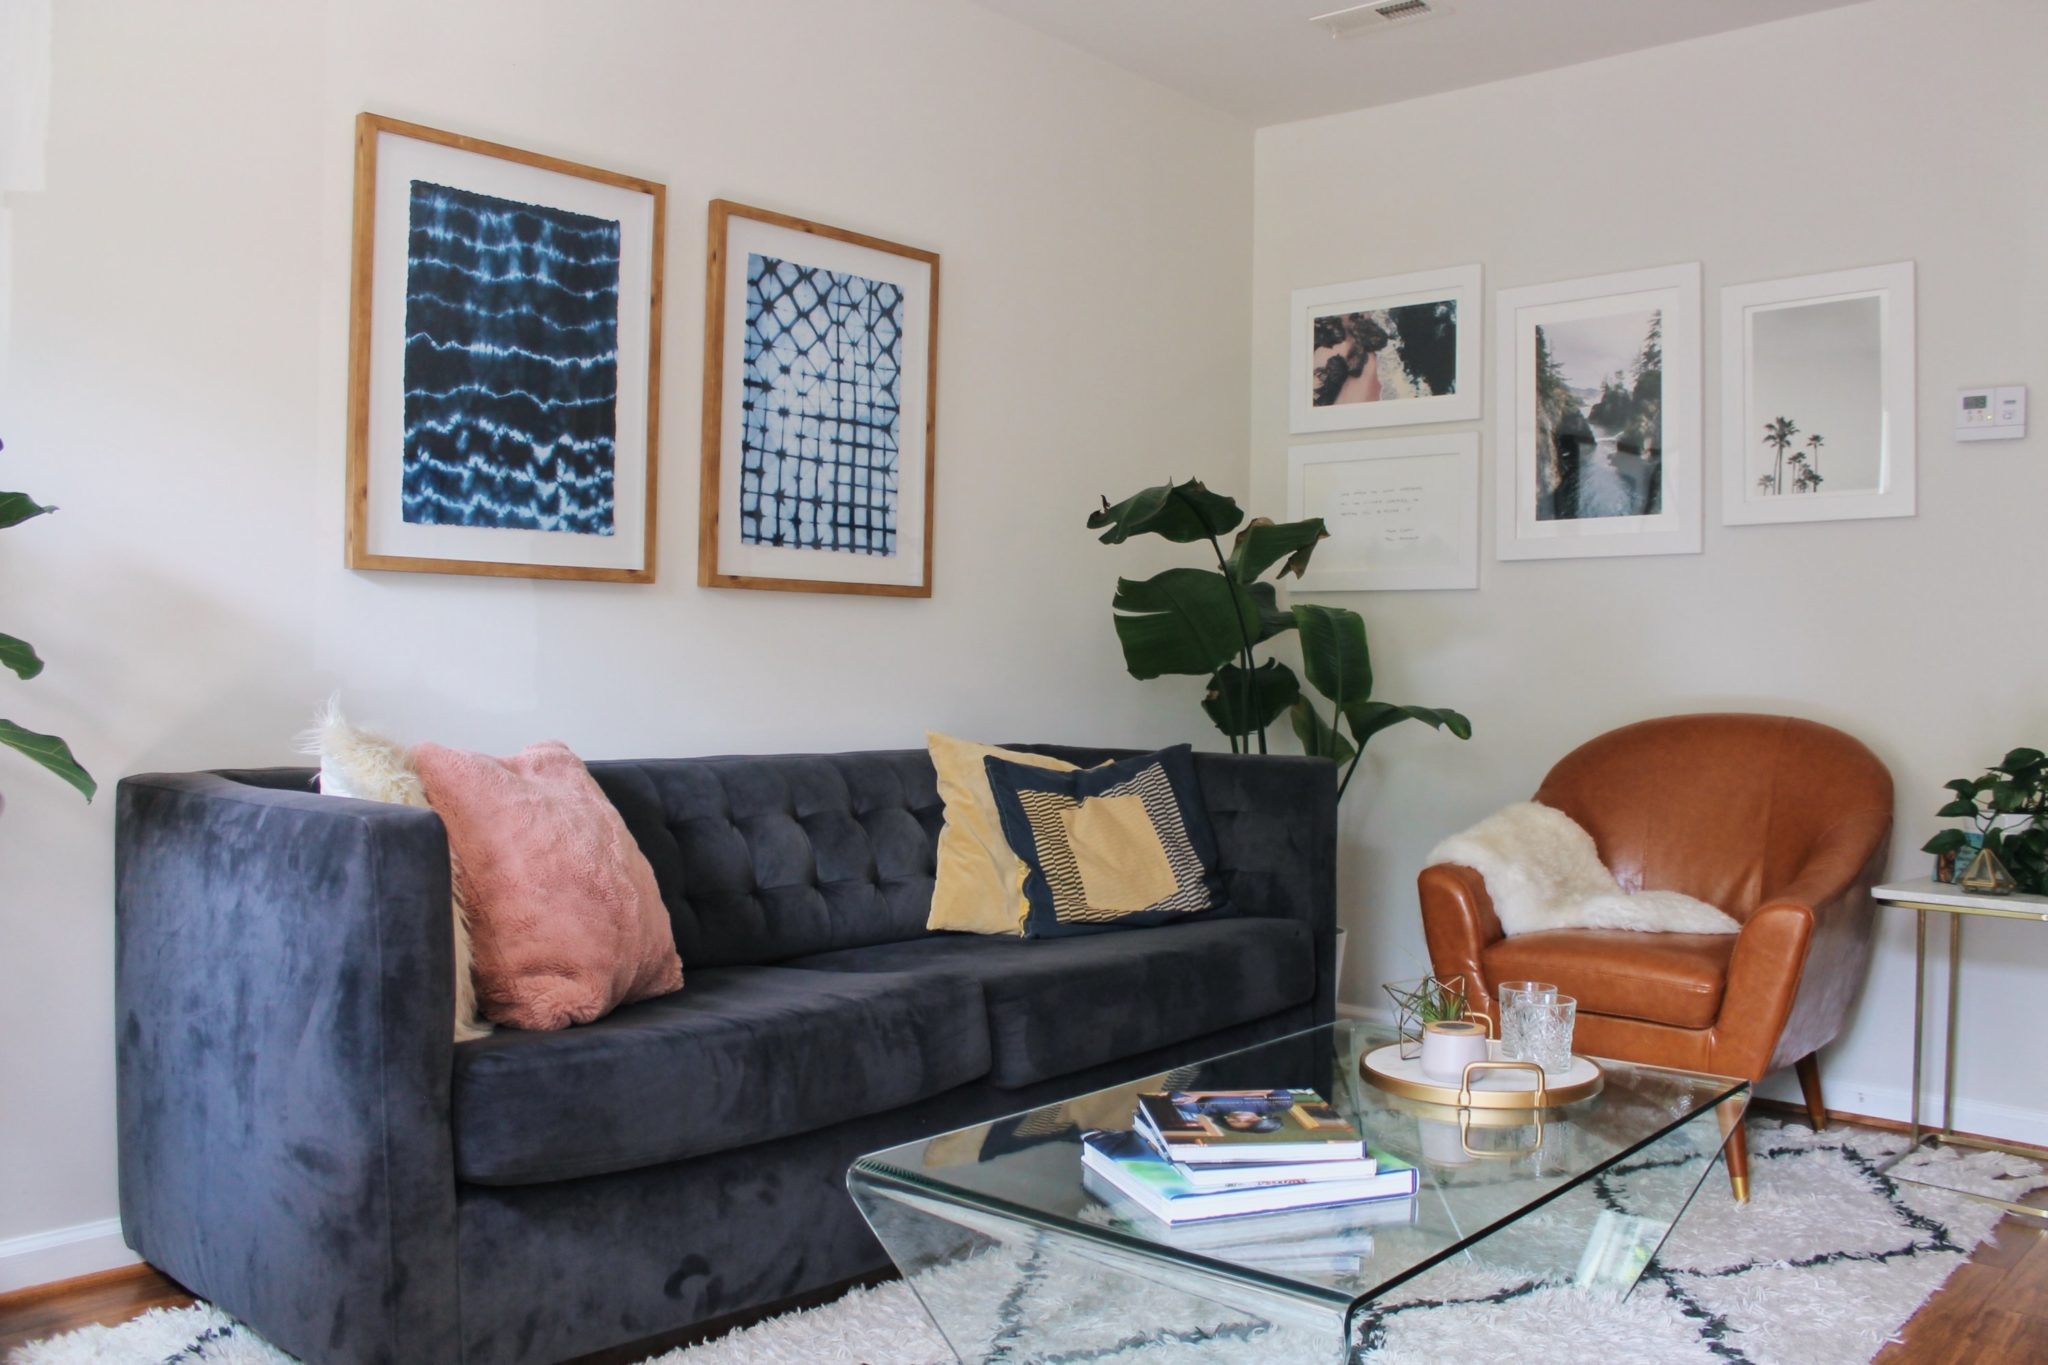 Look Inside My Home: A Plant-Filled One-Bedroom in Kingman Park